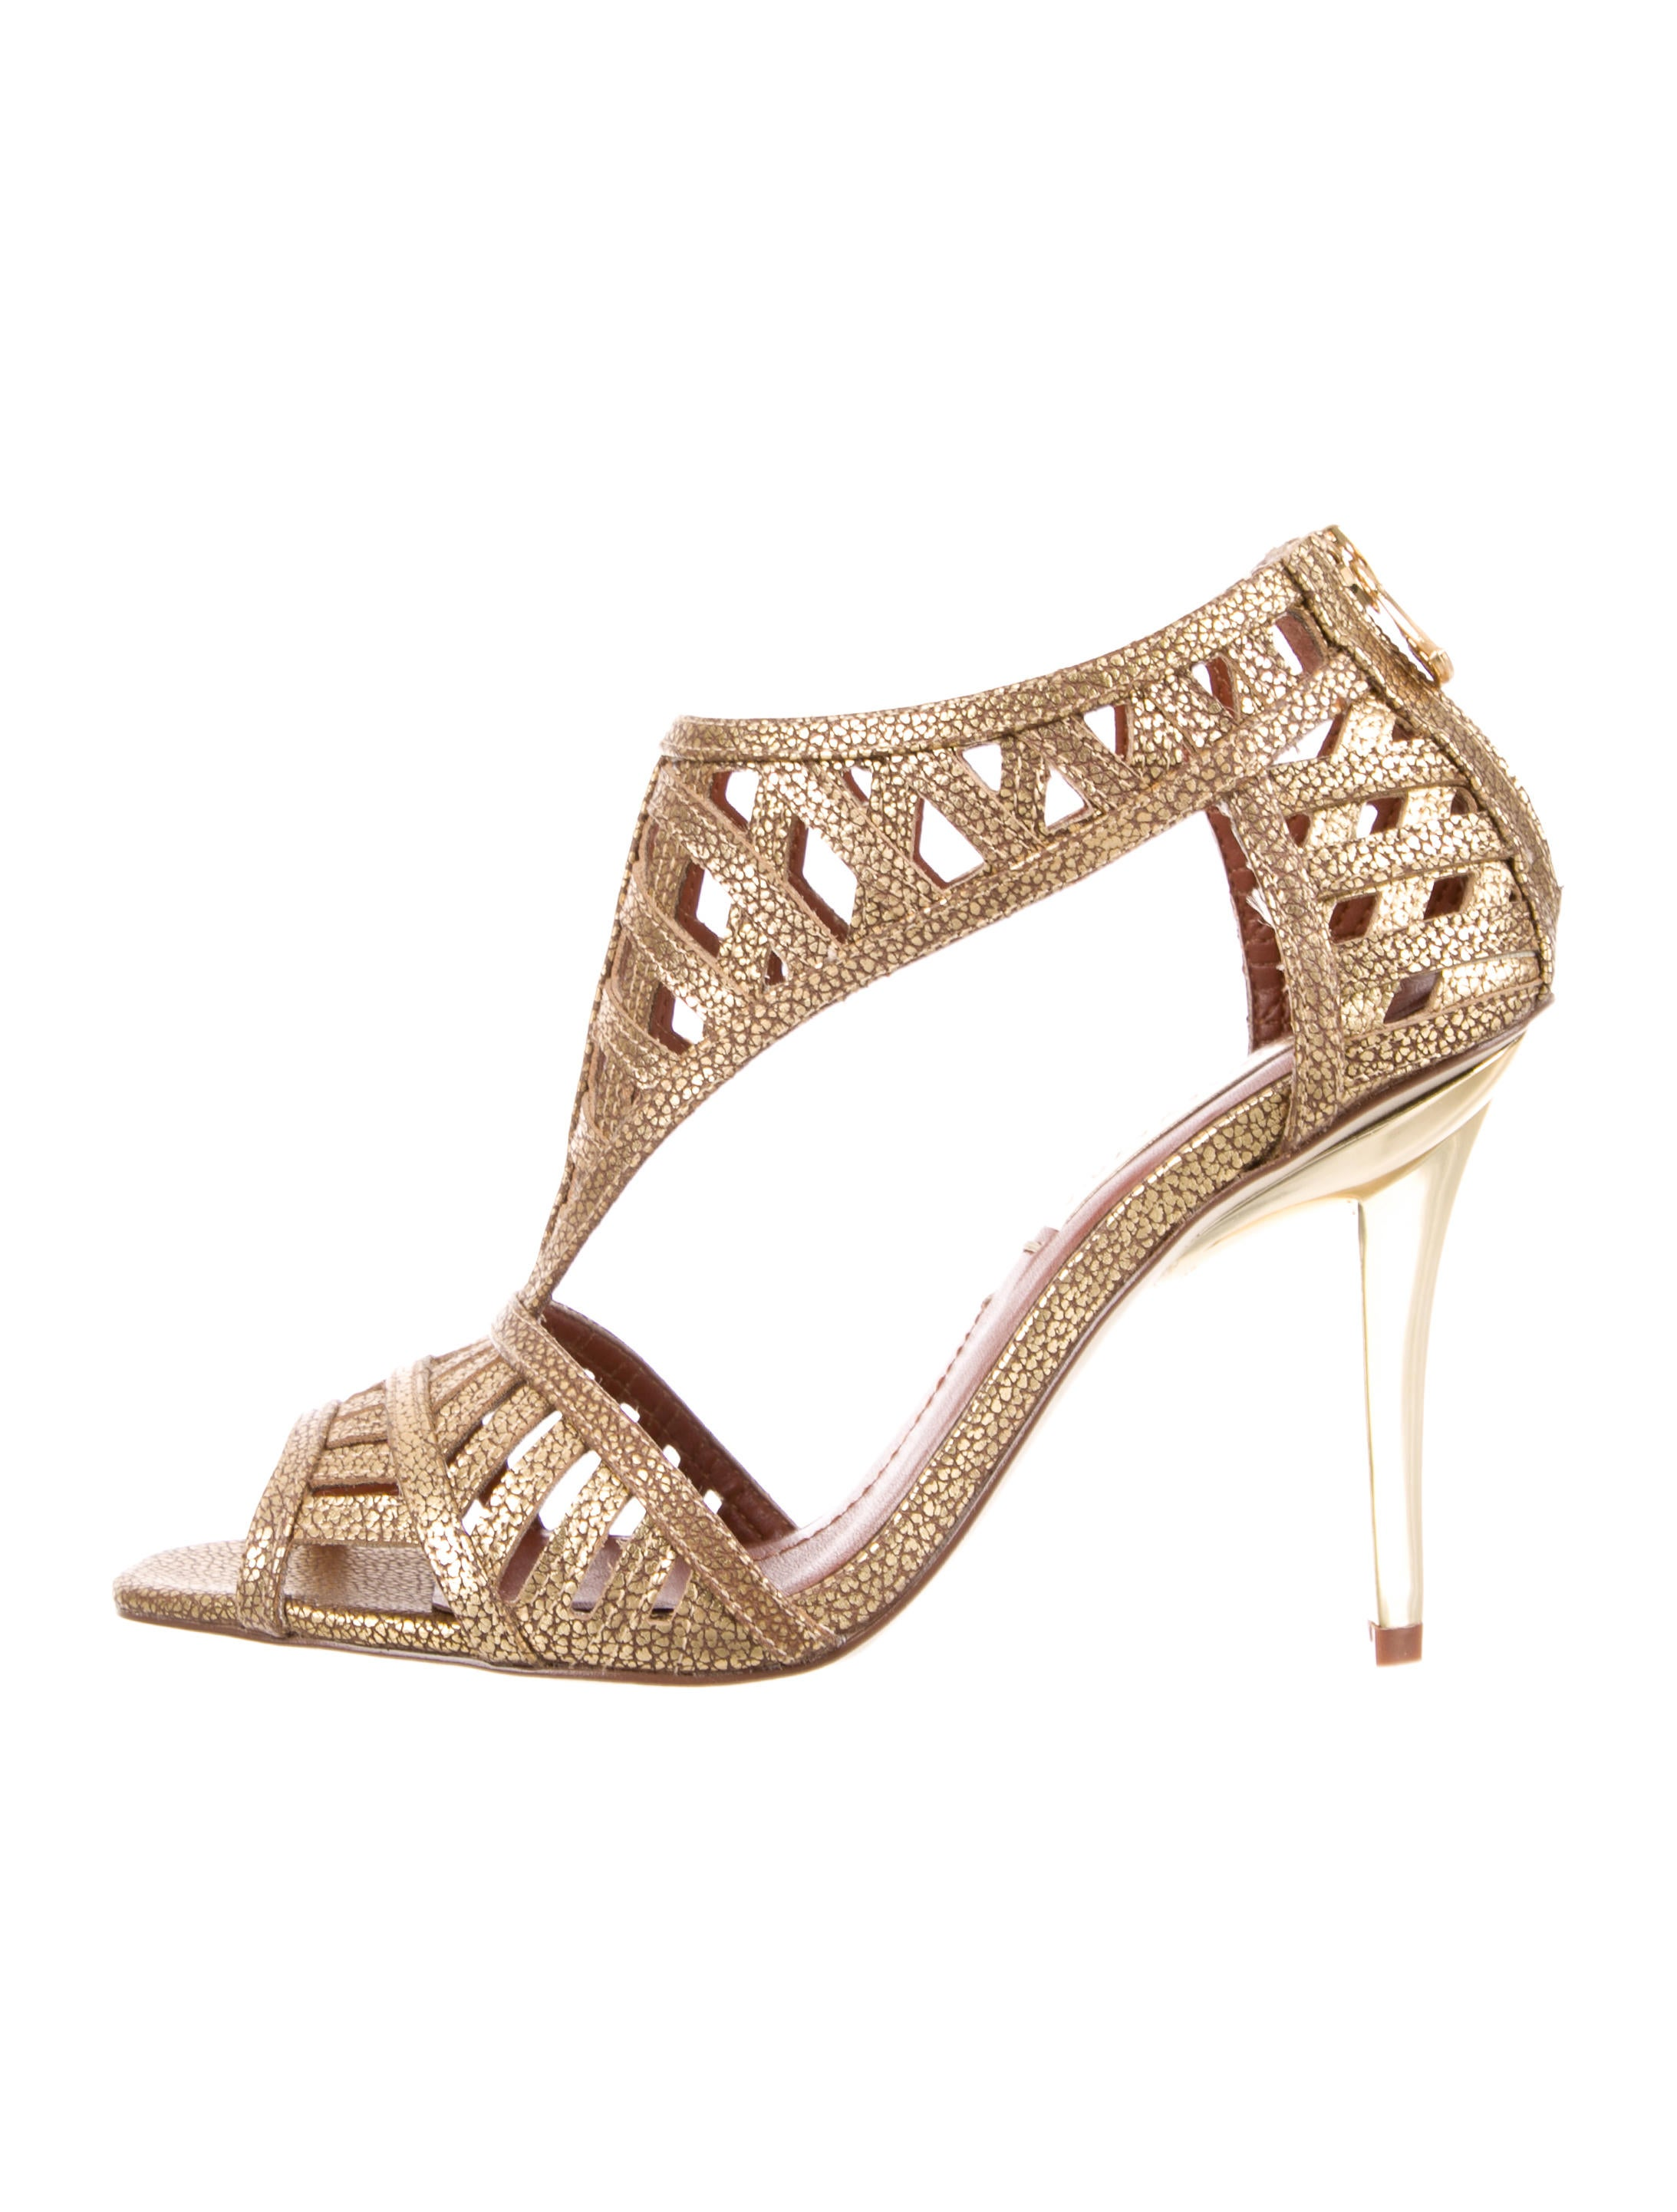 BCBG Max Azria Metallic Cage Sandals pick a best cheap price clearance sneakernews discounts online I70yQh